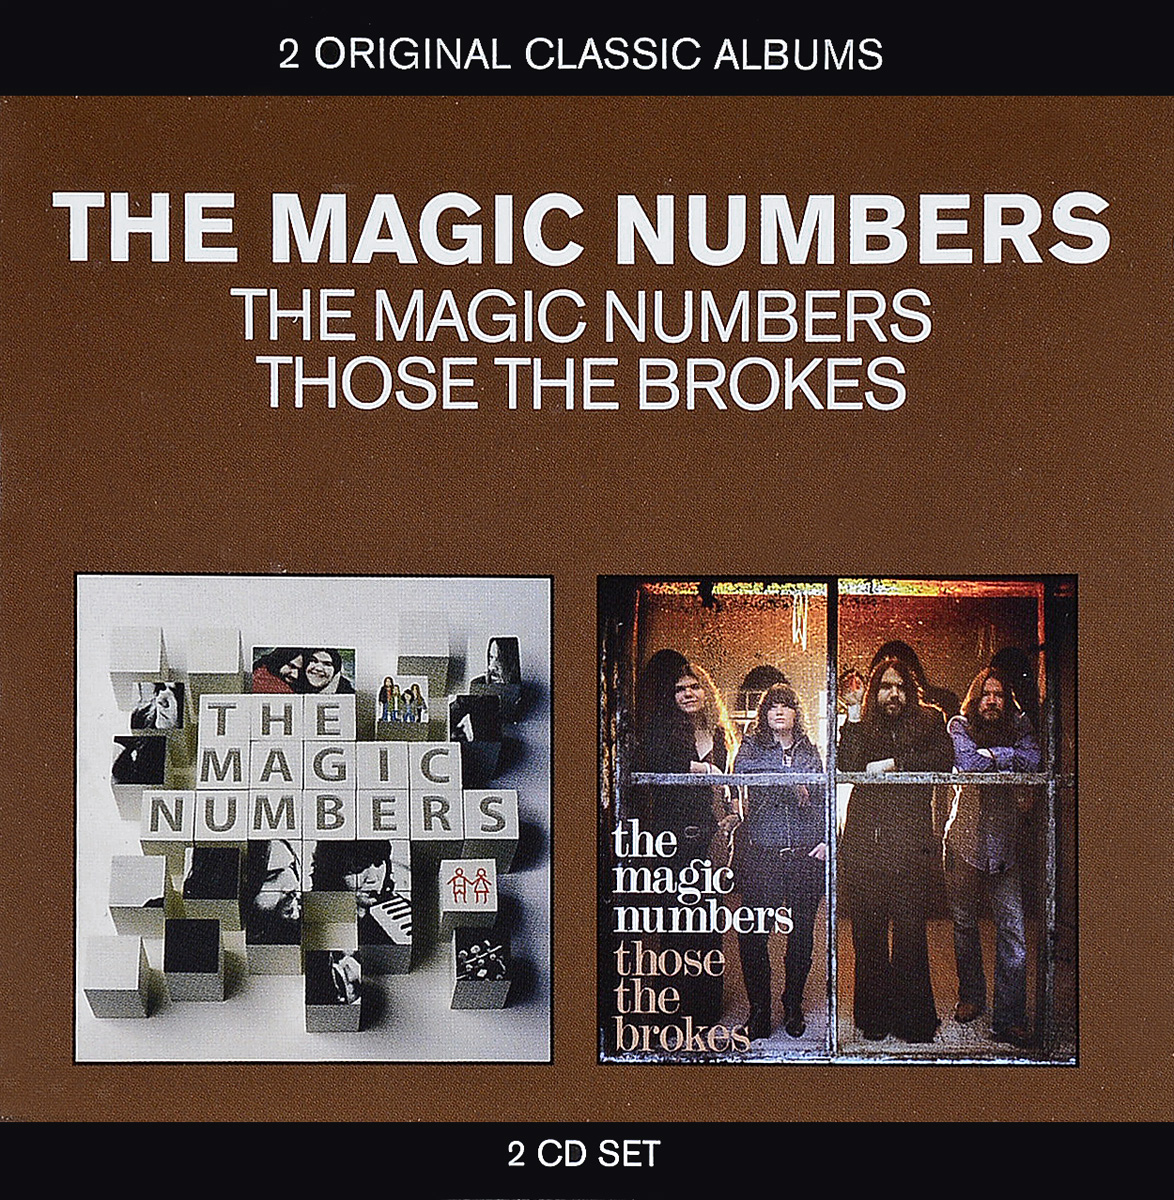 The Magic Numbers The Magic Numbers - 2 Original Classic Albums. The Magic Numbers, Those The Brokes (2CD) ковер casablanca 24105 berber 1600х2300мм